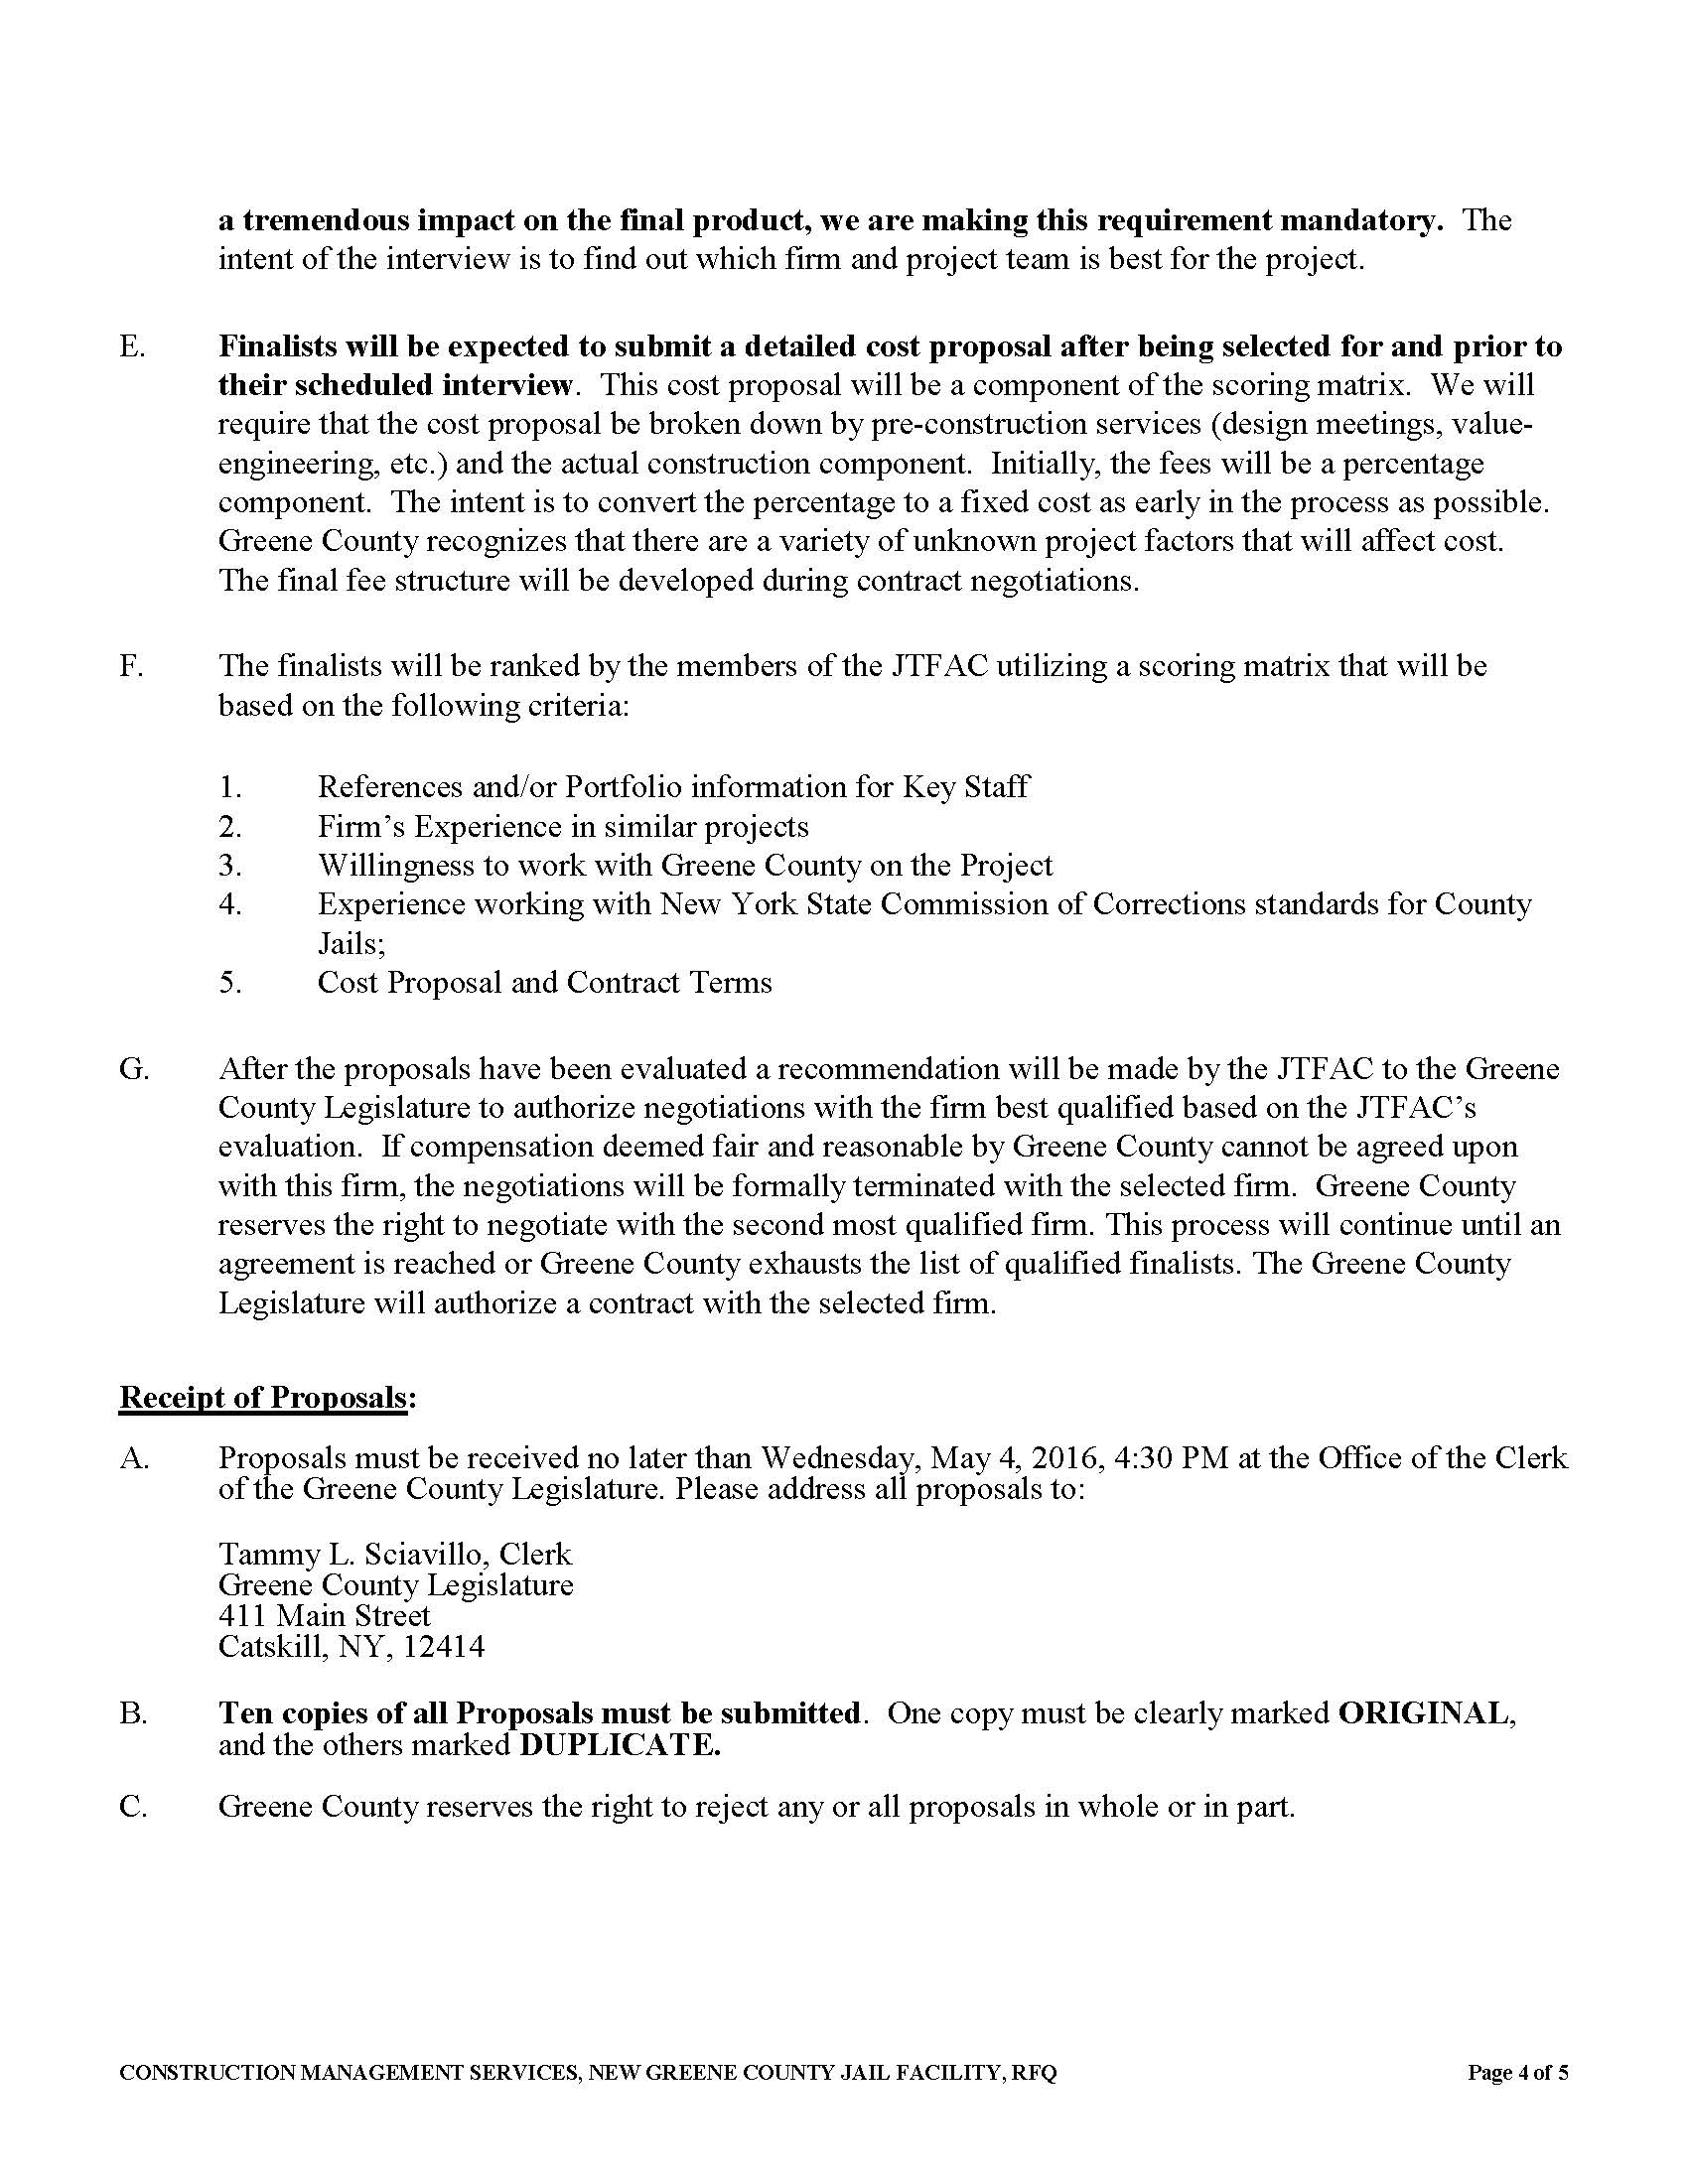 Jail Construction Management Services RFQ_Page_4